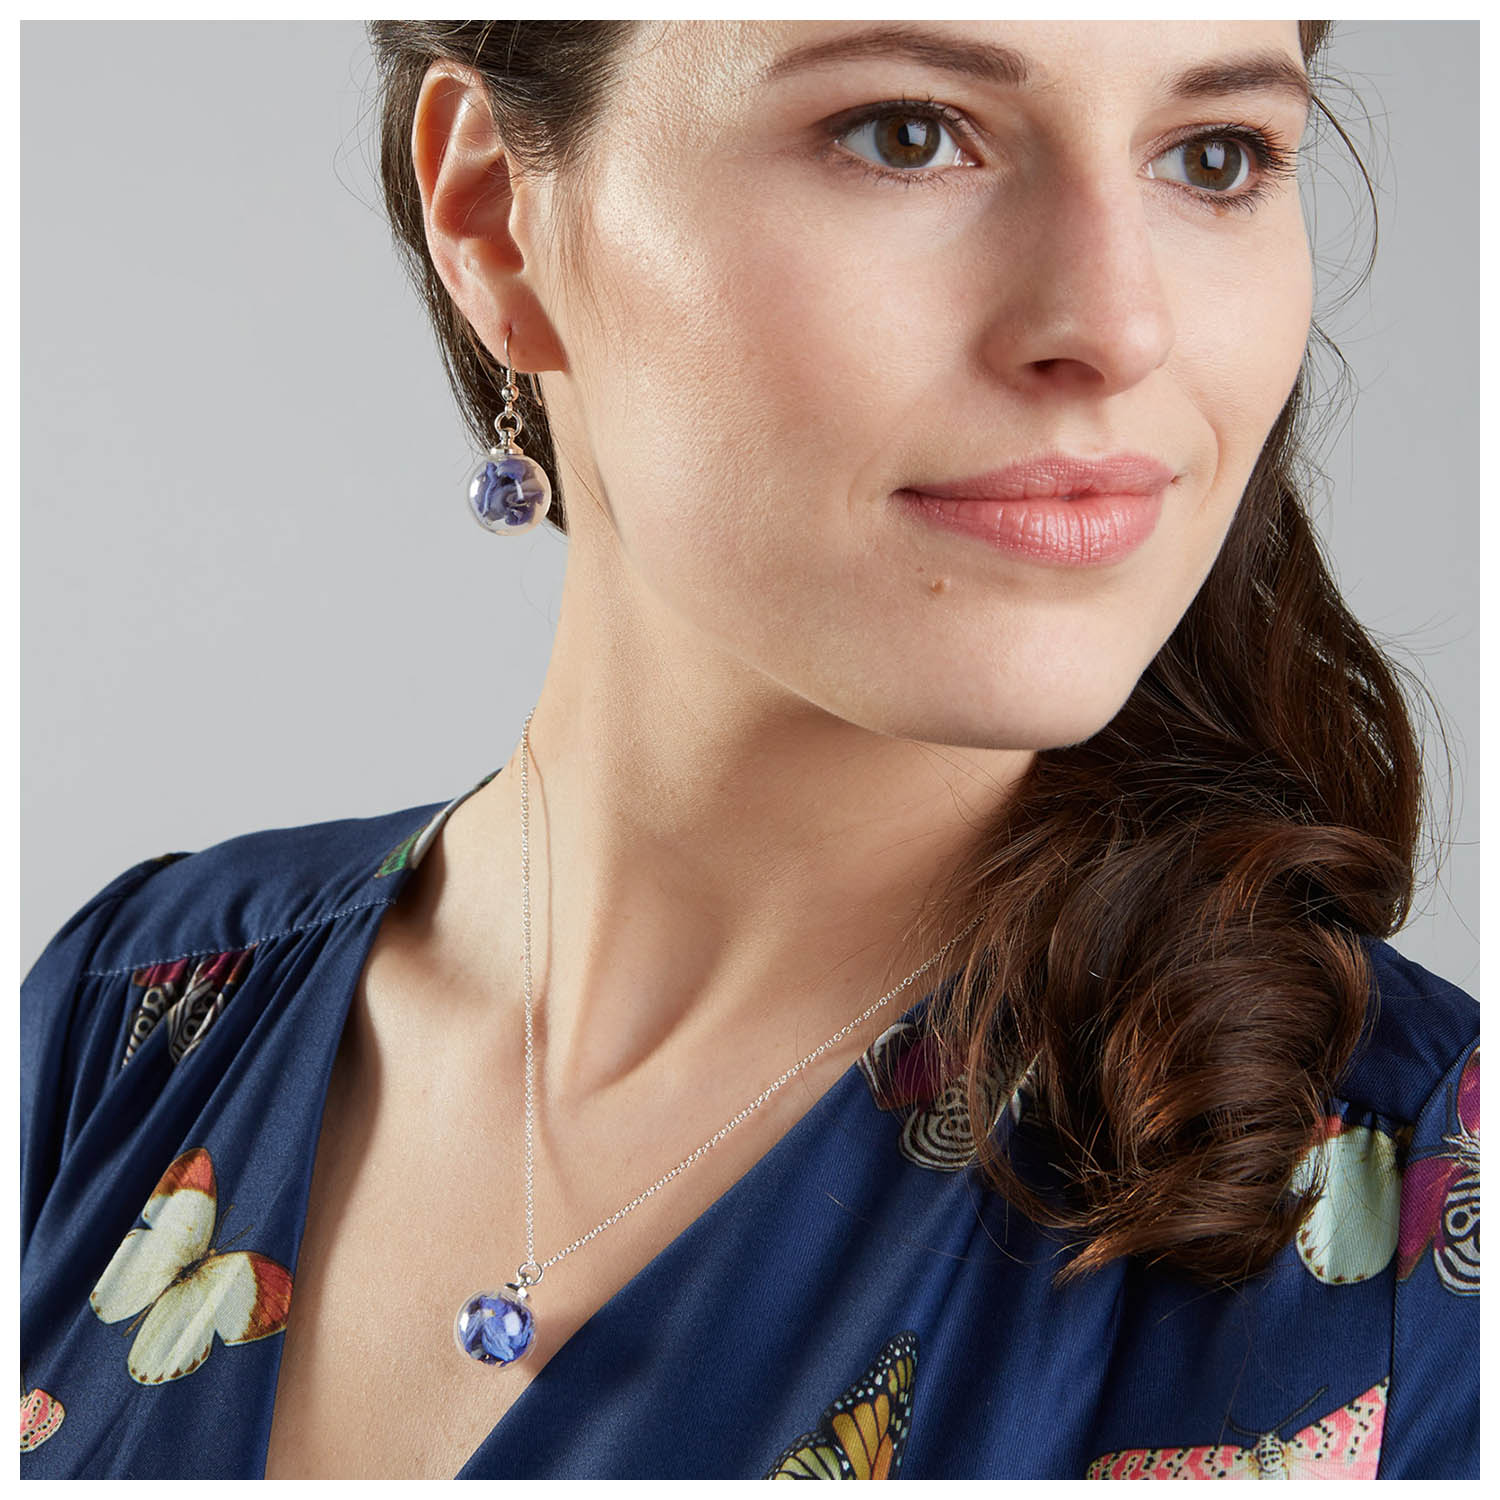 Lizzy Chambers Light Blue Necklace and Earrings Sterling Silver £30 each